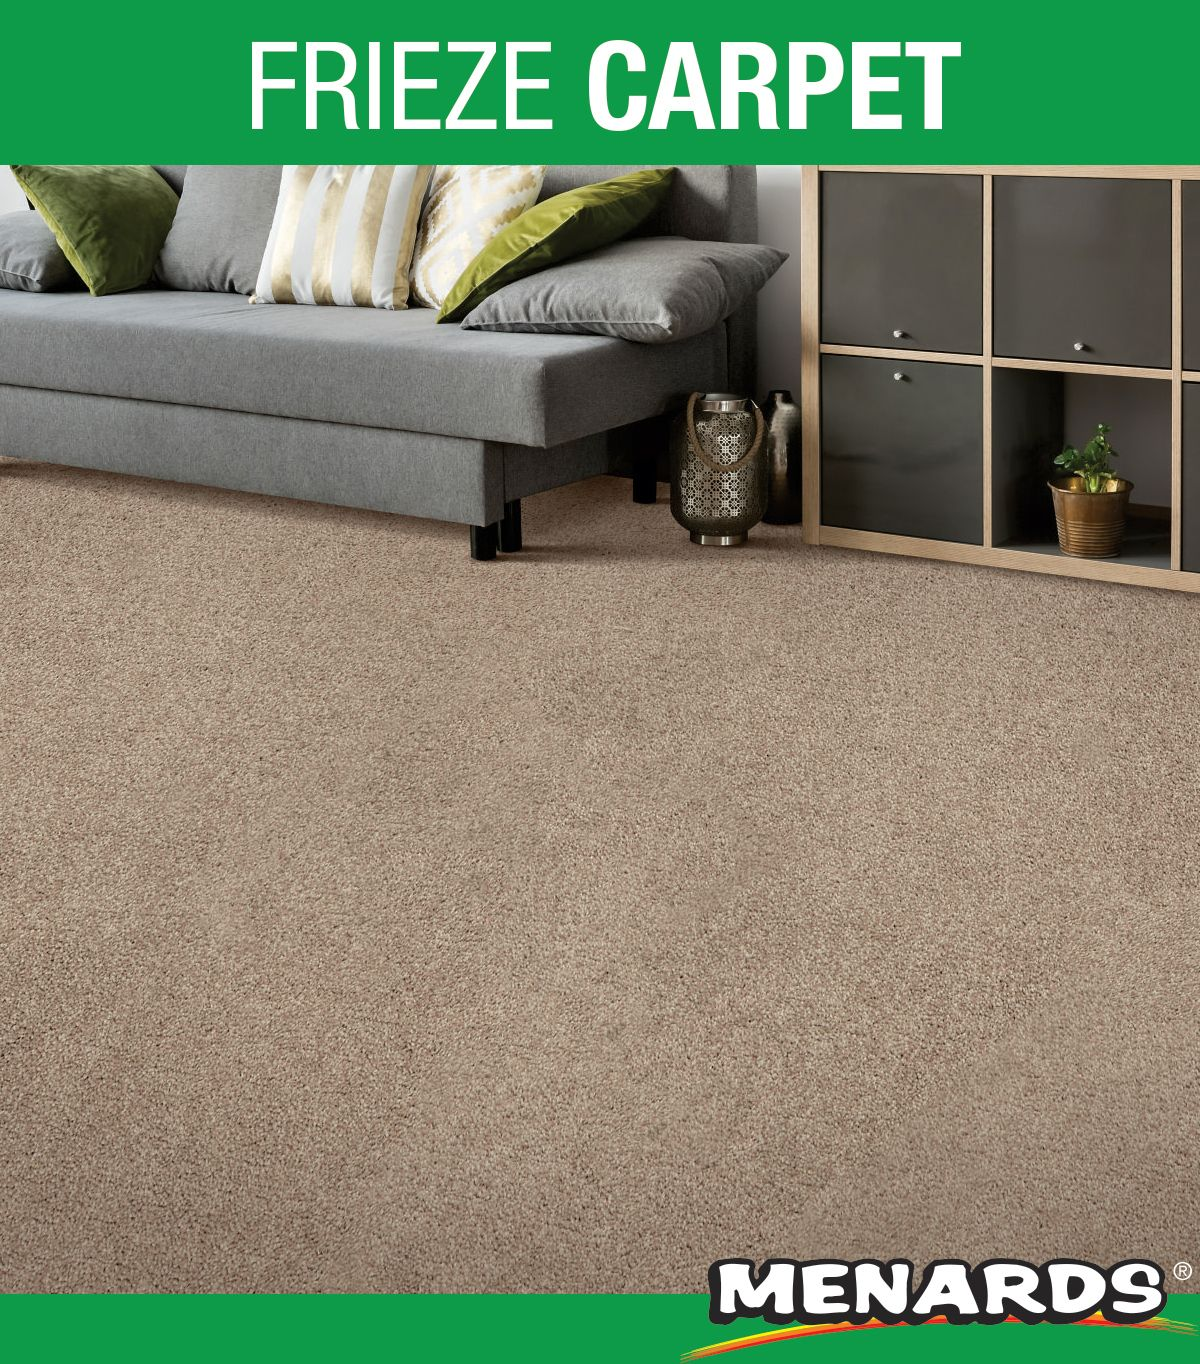 Mohawk Sky Valley Frieze Carpet 12 Ft Wide Textured Carpet Frieze Carpet Carpet